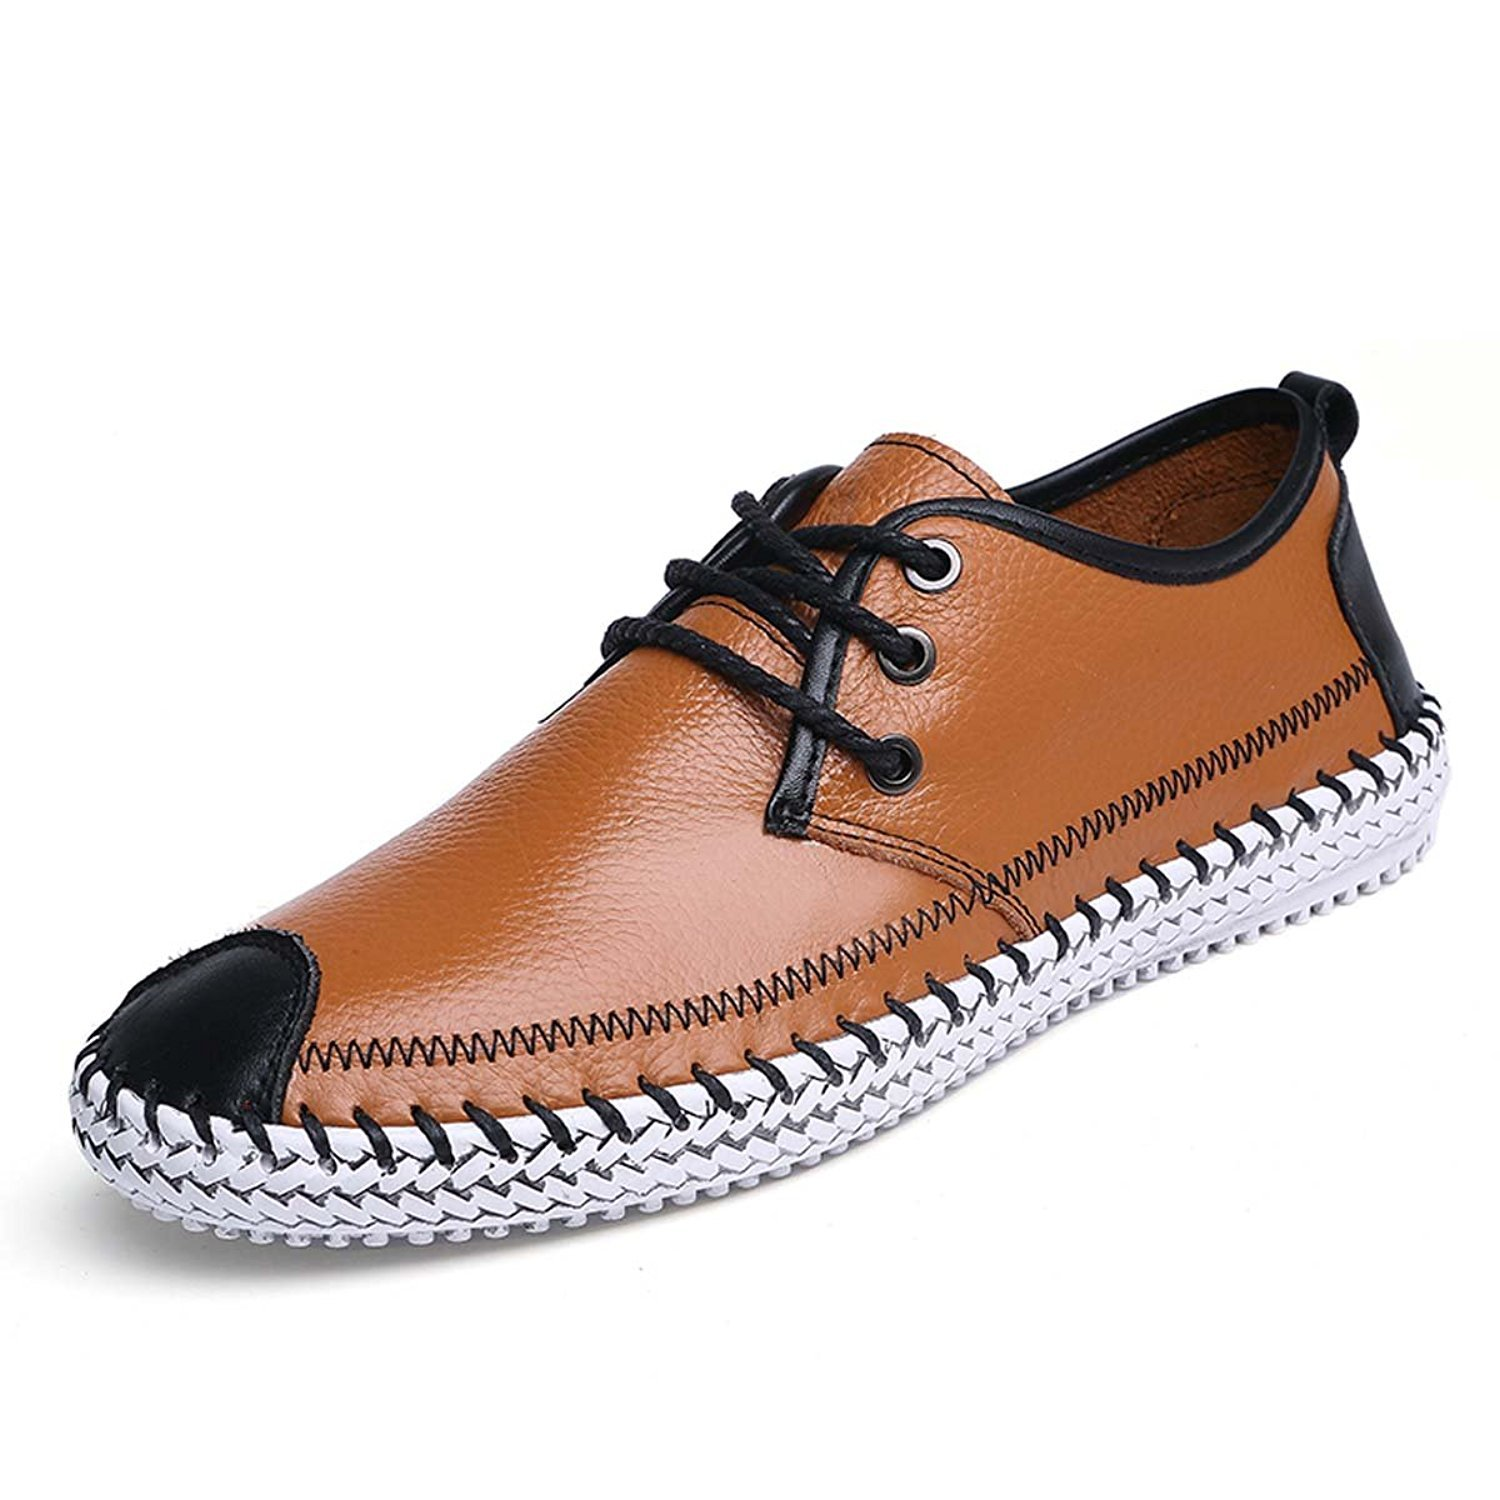 b9518b5595a8 hot sale MMC Men s Fashion Casual Leather Shoes Comfortable Soft Loafers  Driving Walking Flat Lace Up